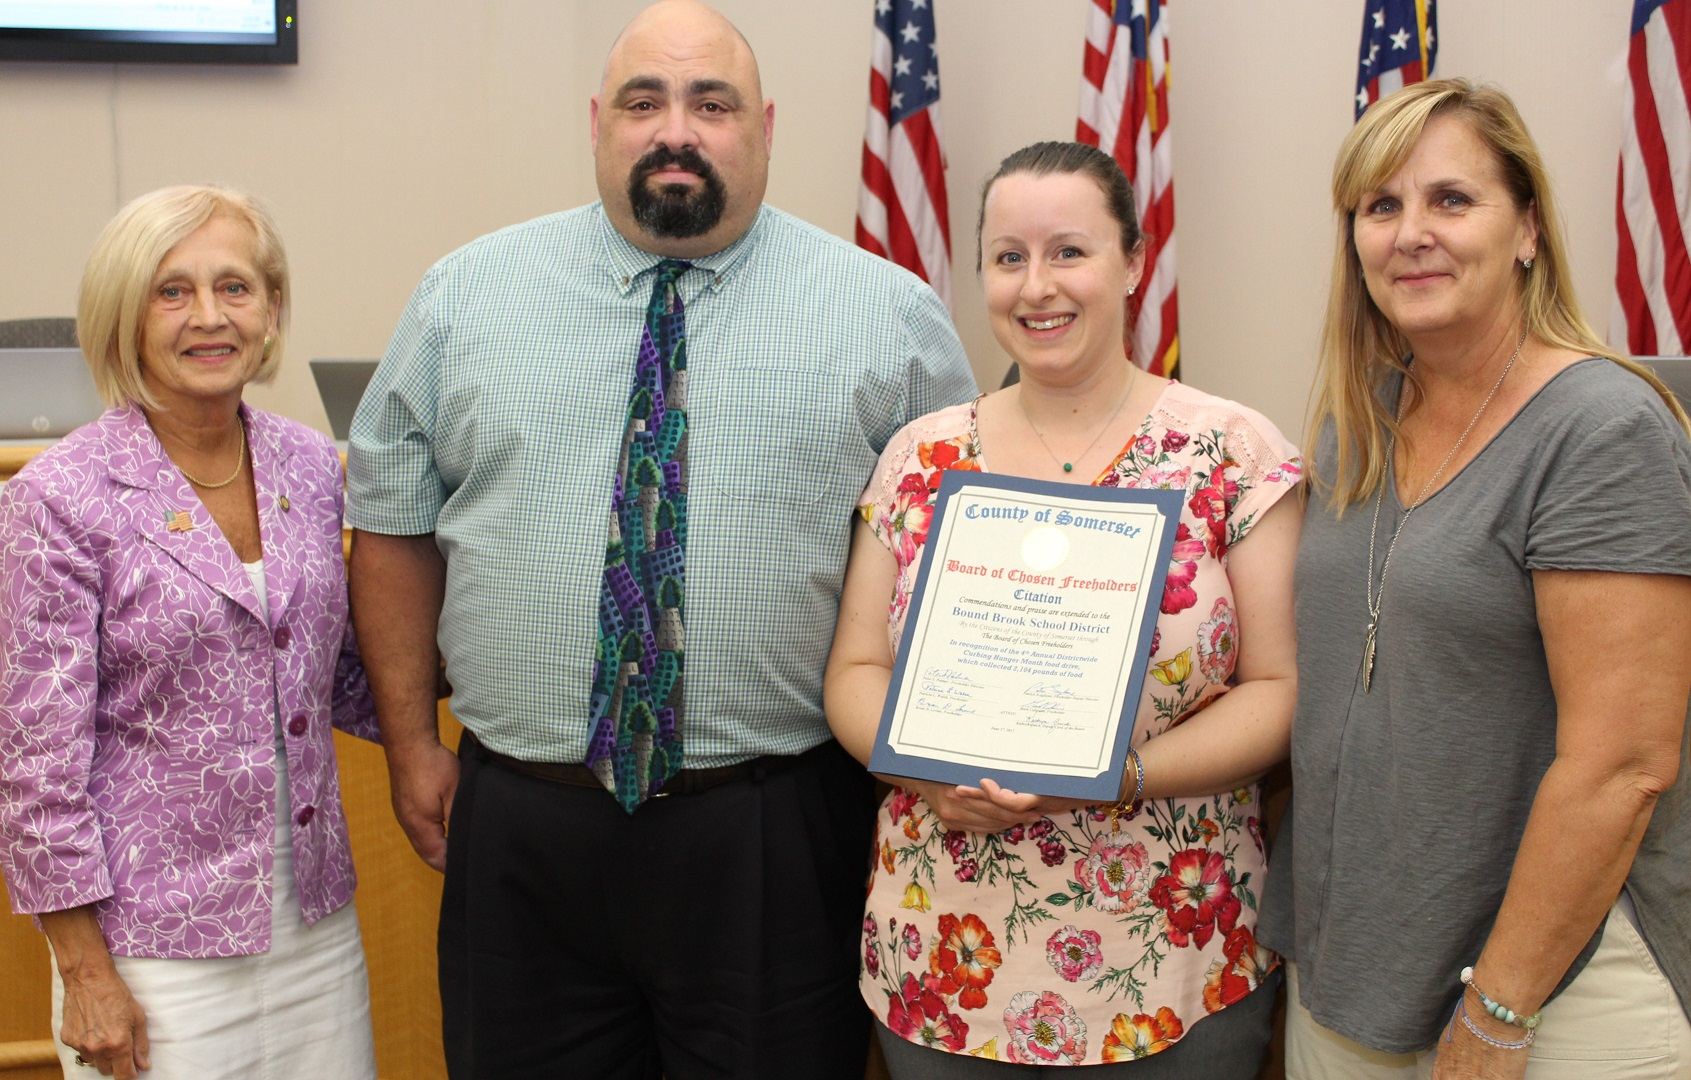 20170627-CITATION-Bound Brook Schools Curbing Hunger Month-cropped